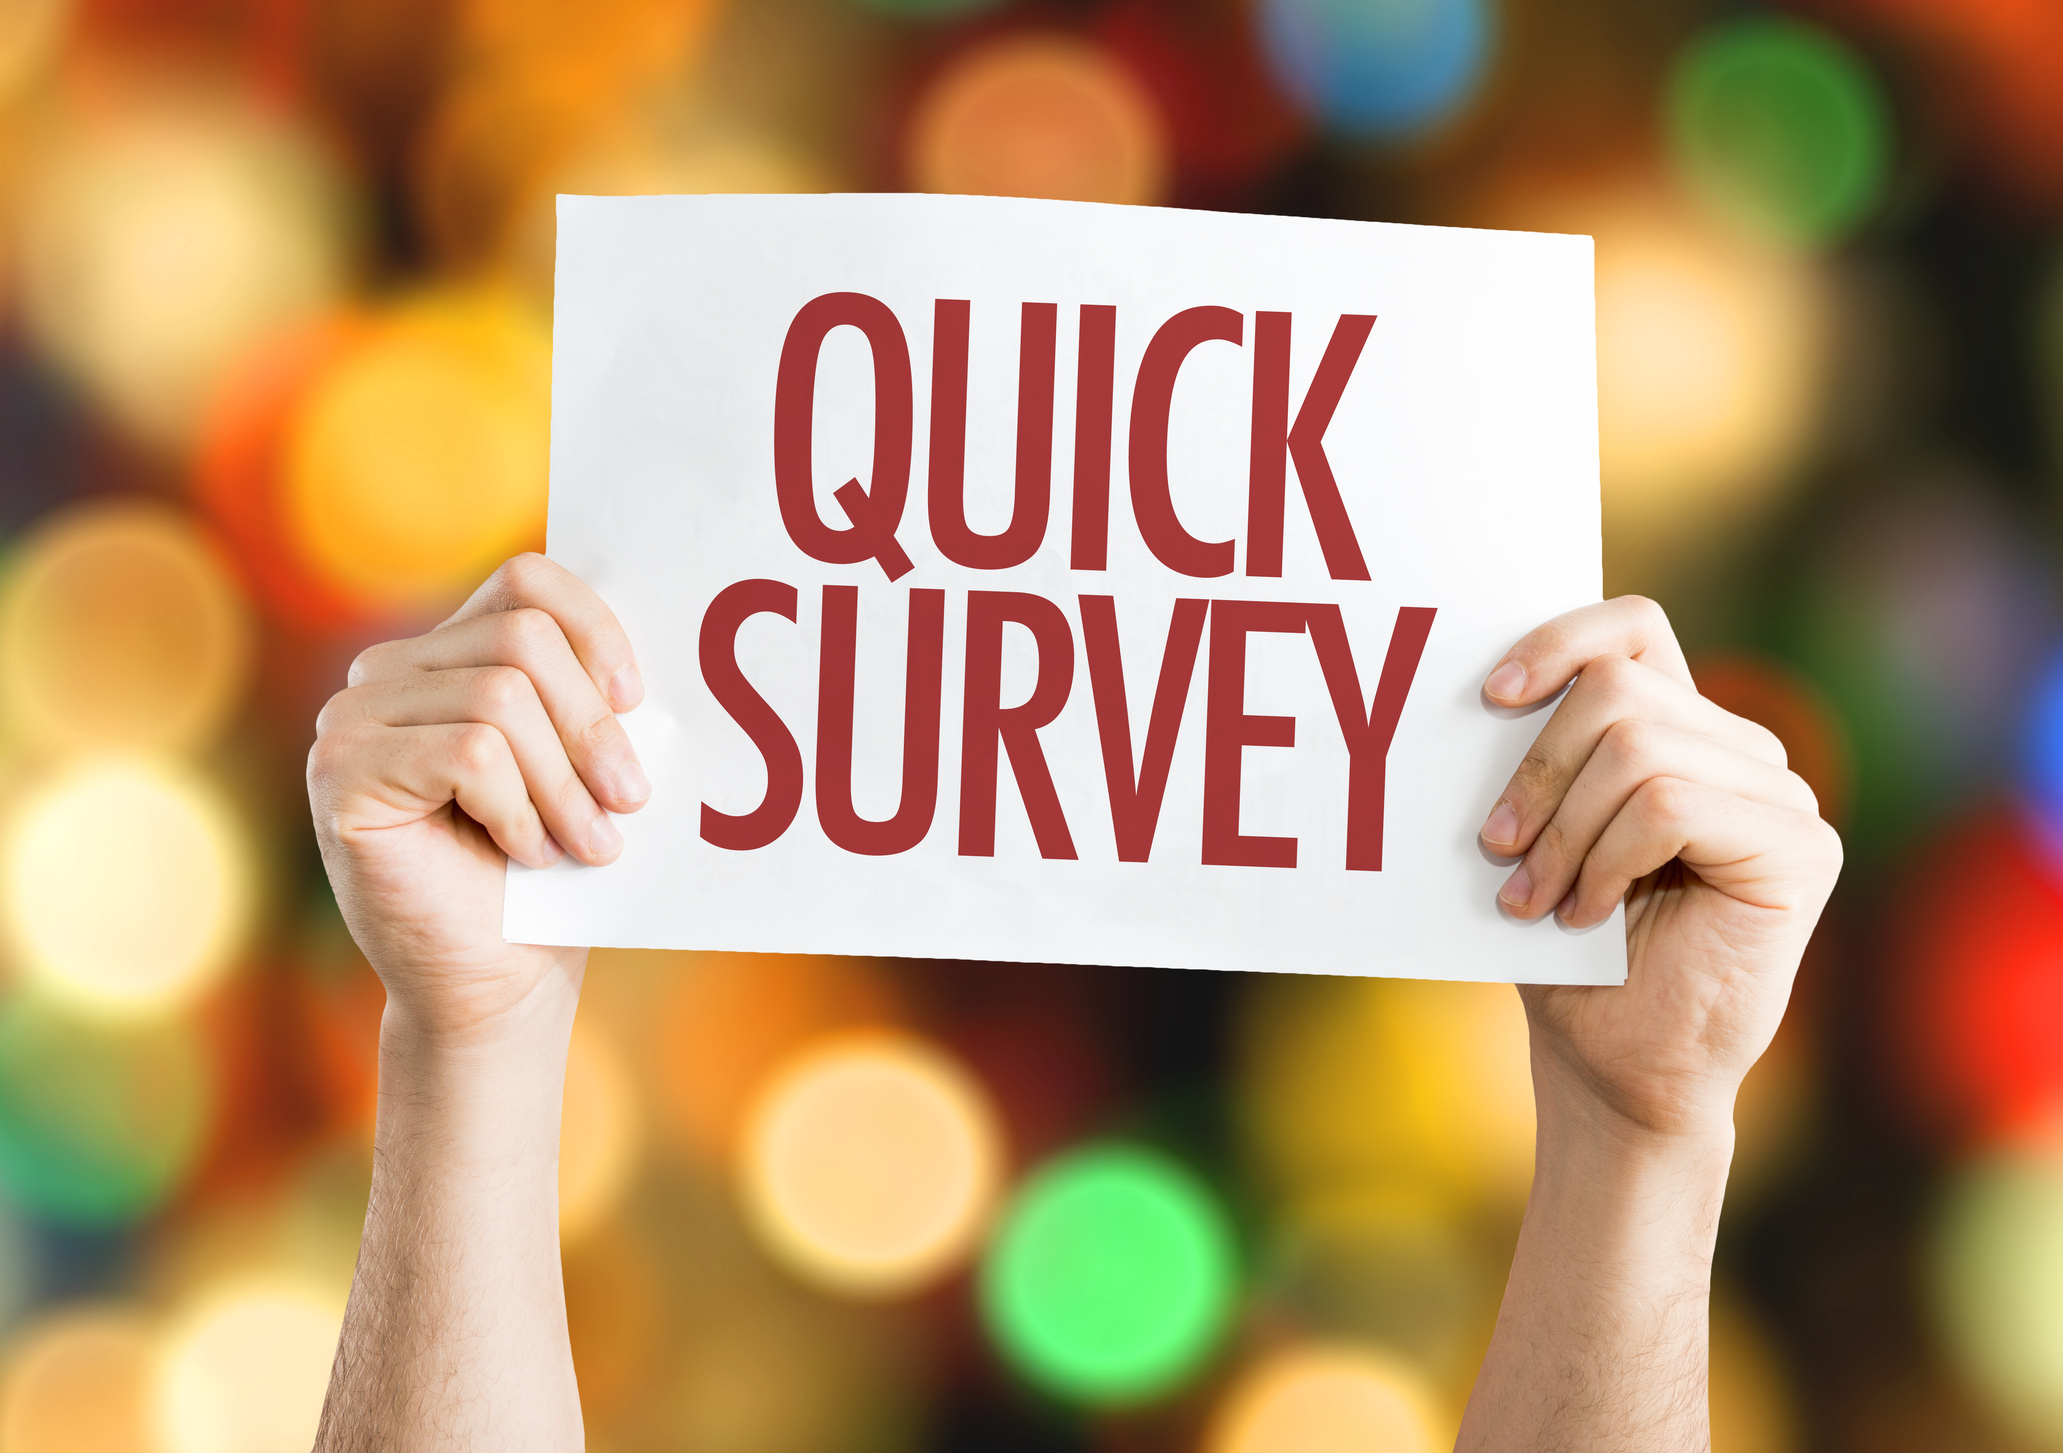 QuickSurvey